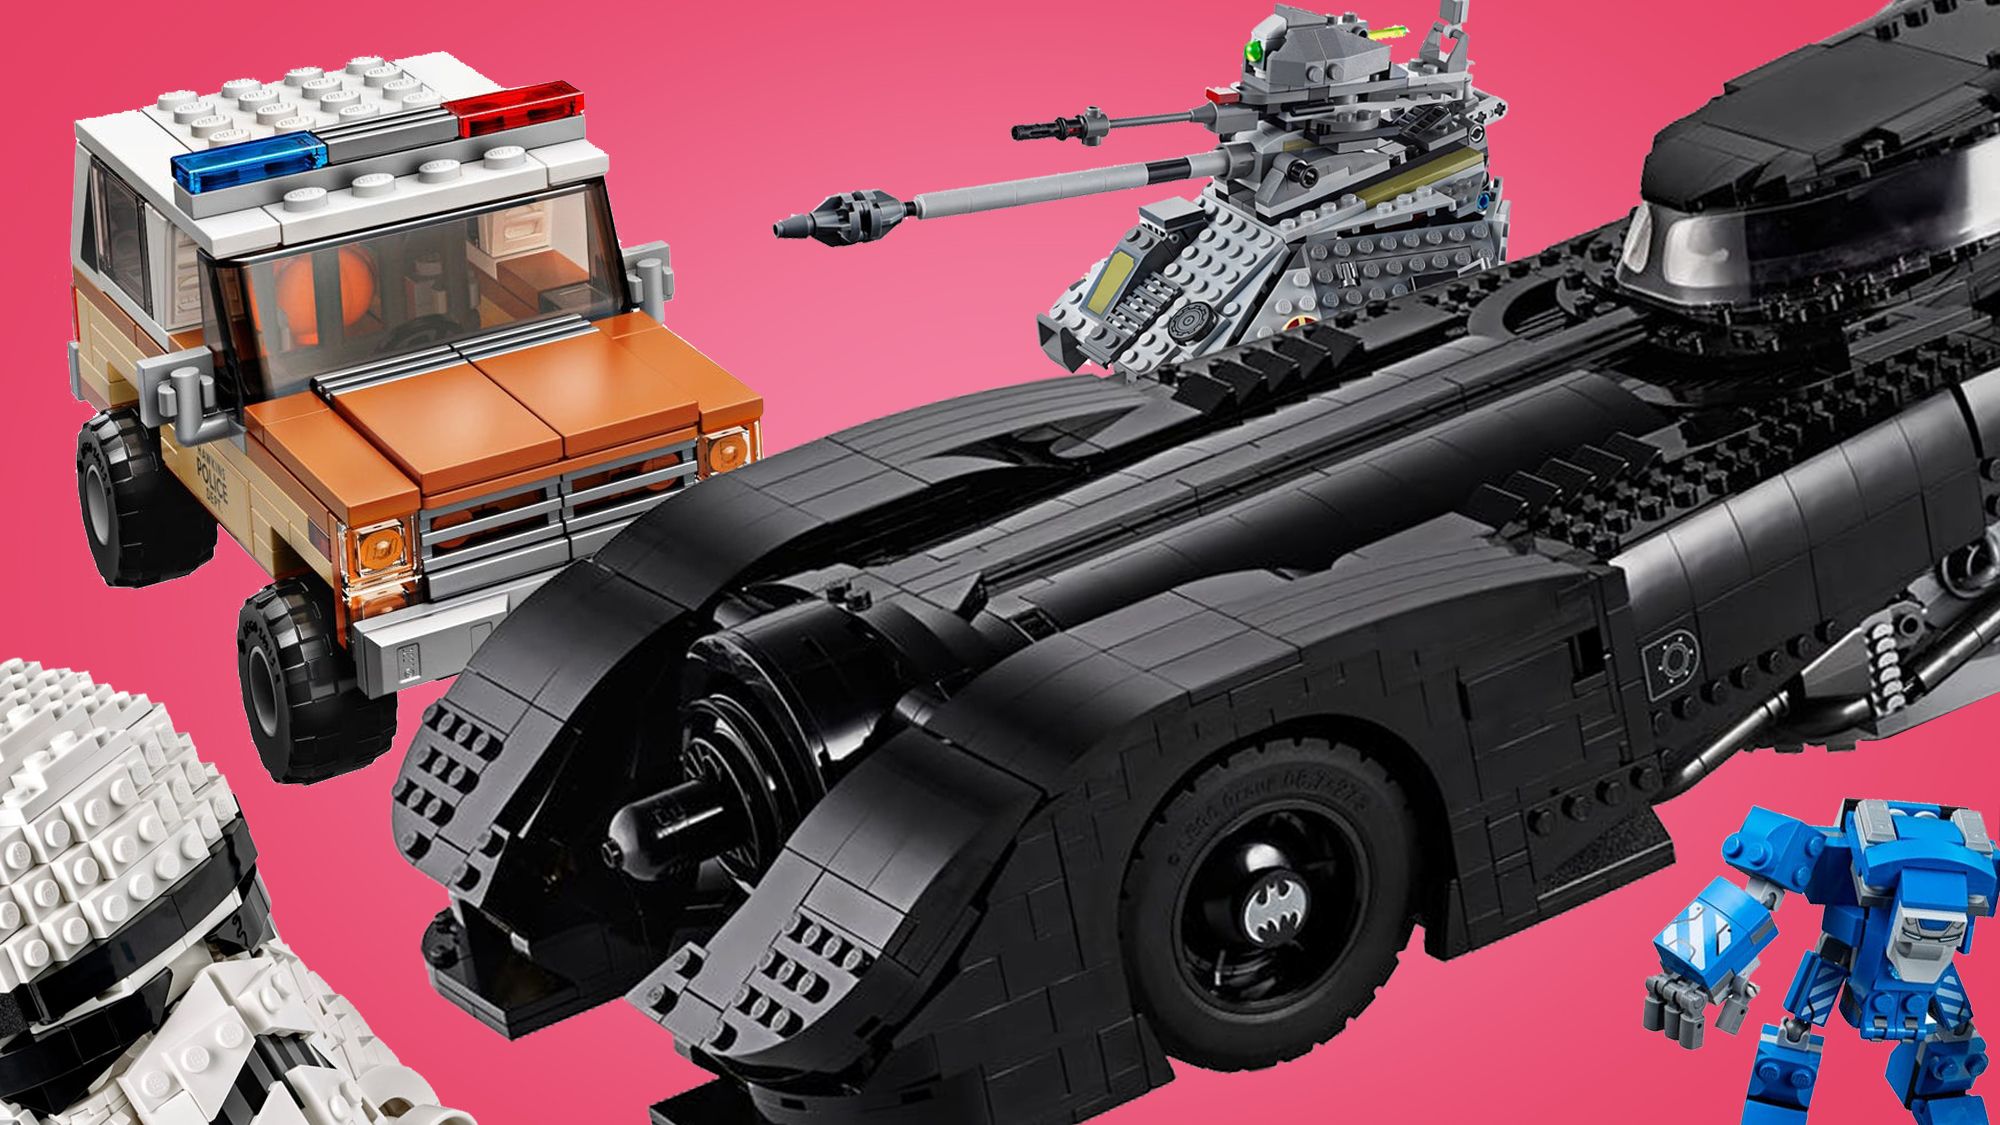 Best Lego sets 2020: the finest new builds, from Stranger Things to Batmobiles